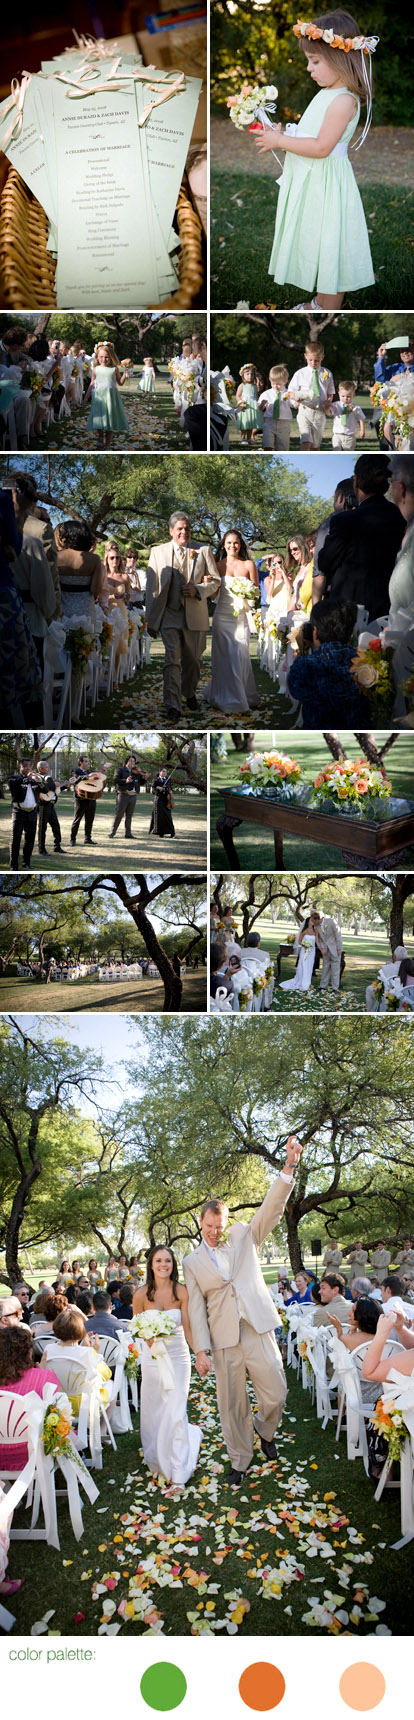 Tuscan, Arizona outdoor wedding ceremony with mariachi band, orange and green wedding color palette, images by Roberto Valenzuela Photography